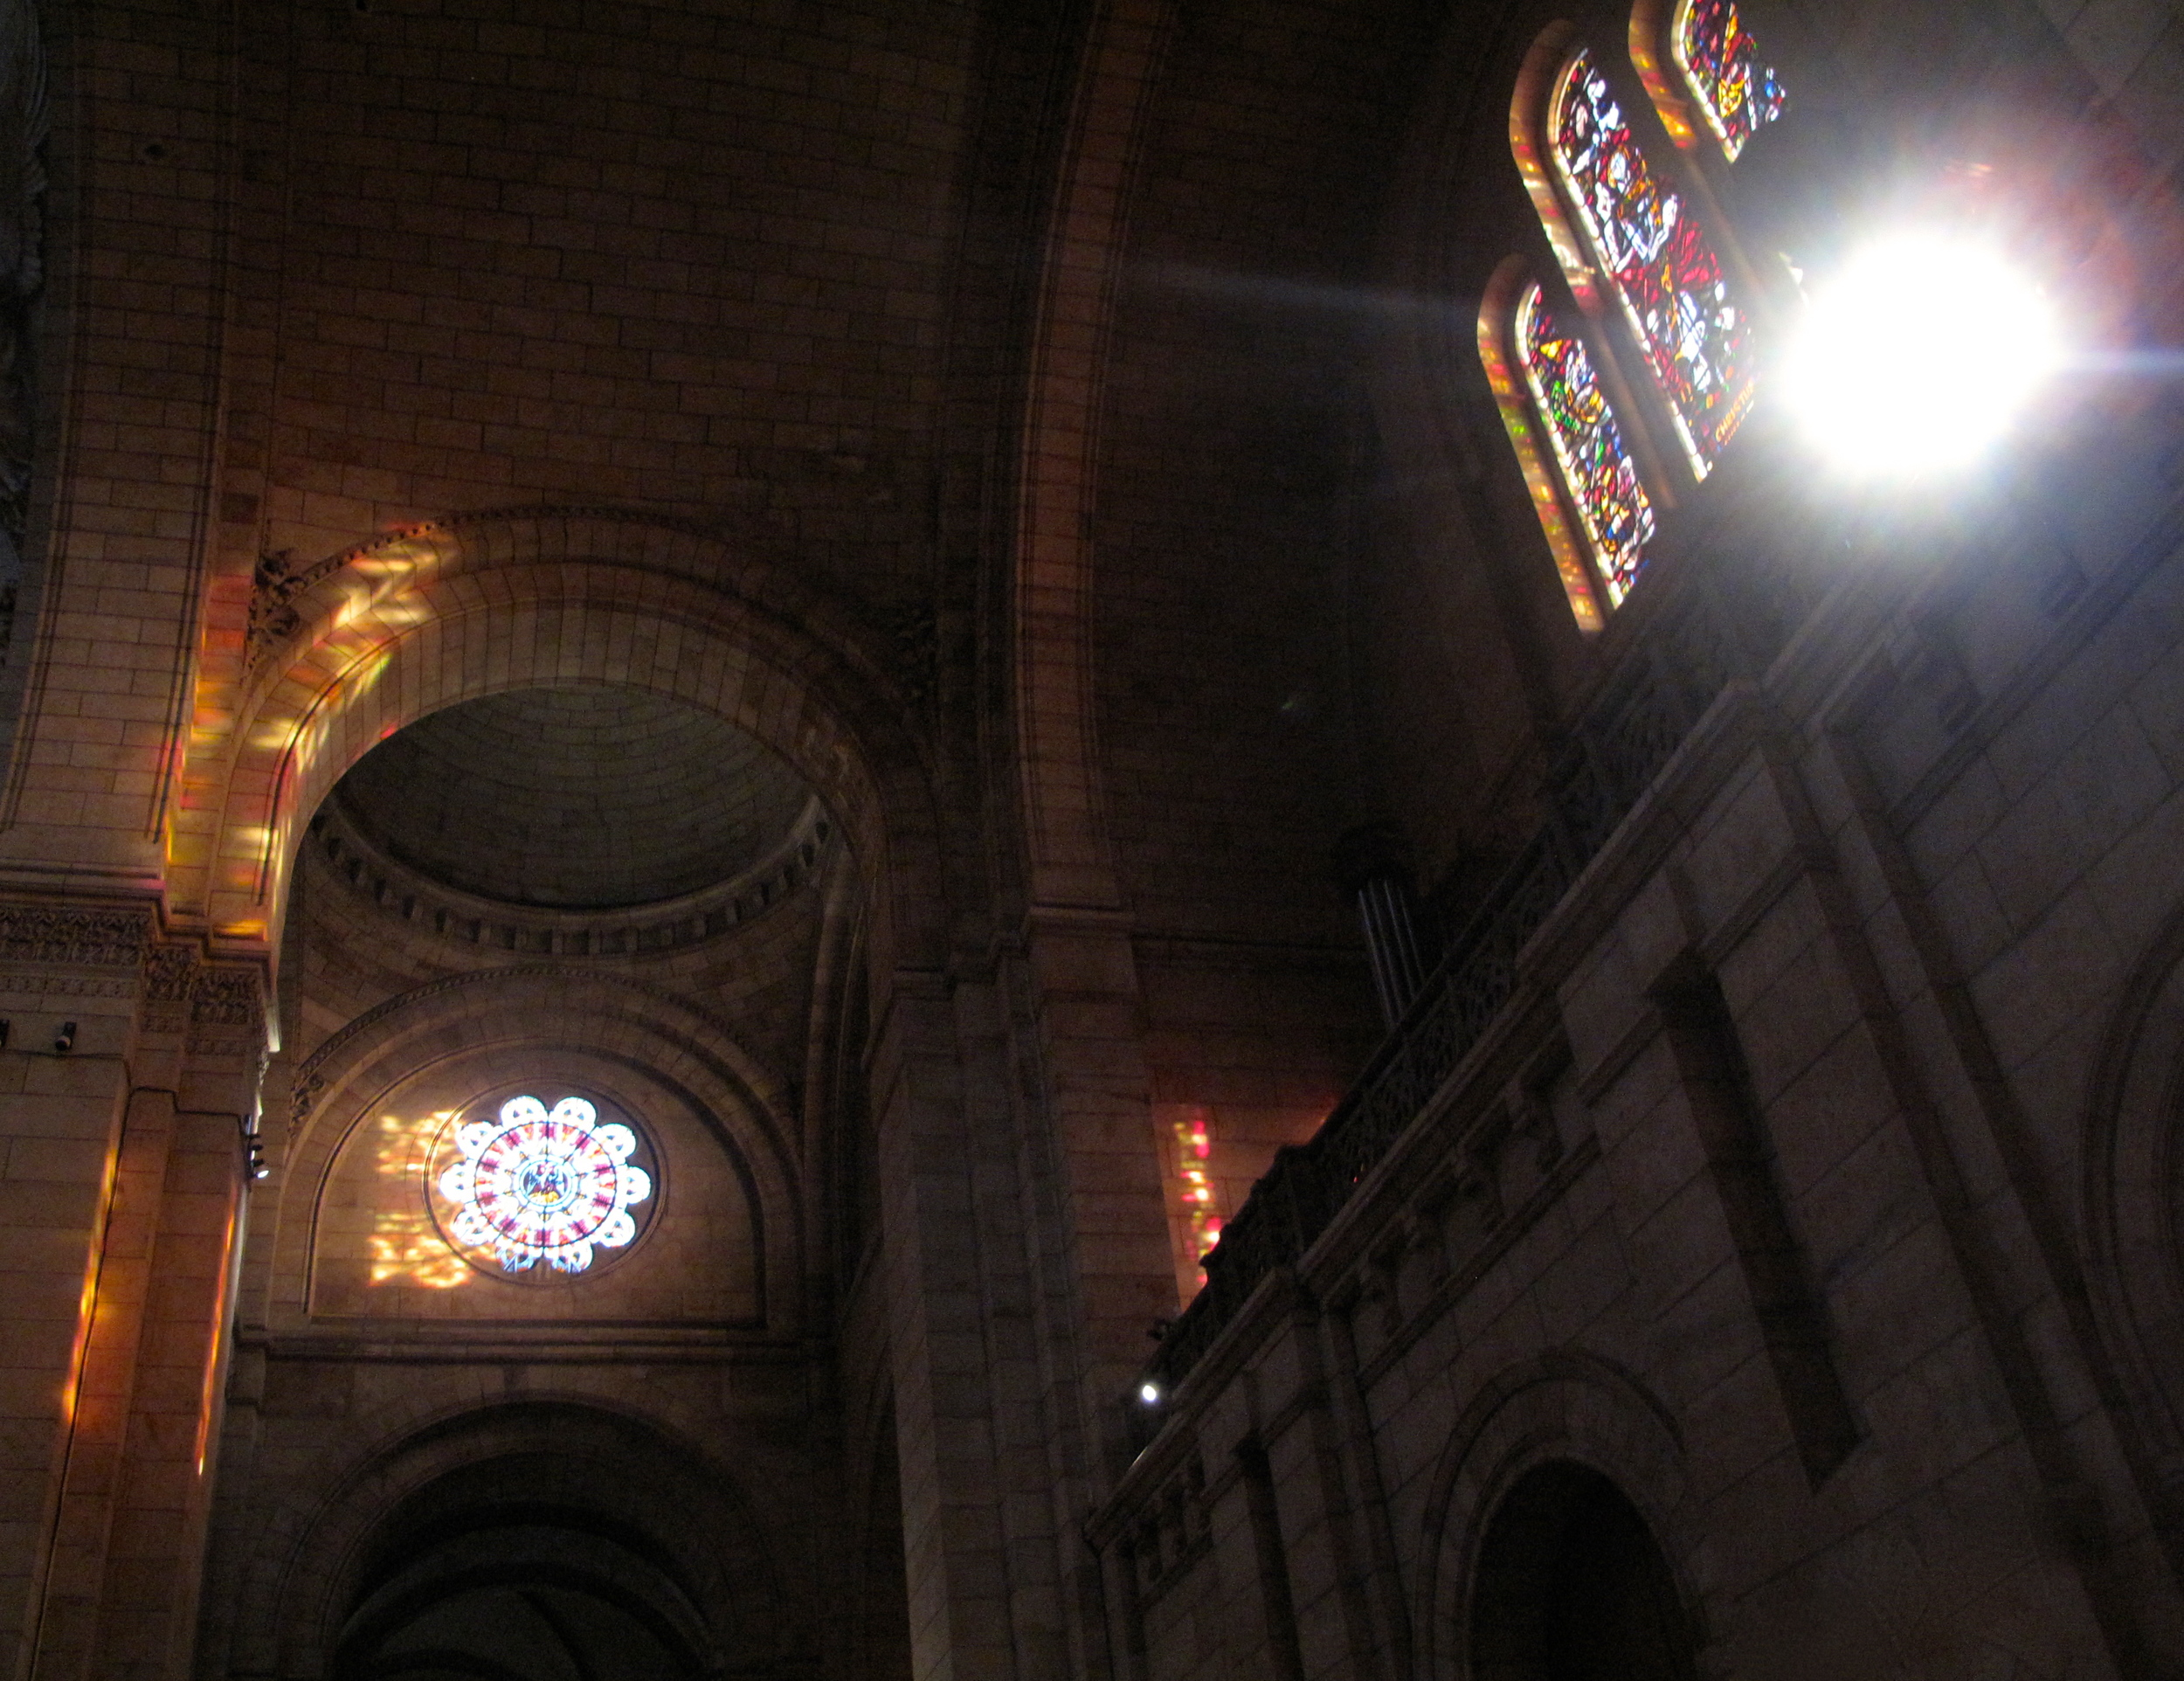 The reflections of stained glass at sunrise inside Sacré Coeur